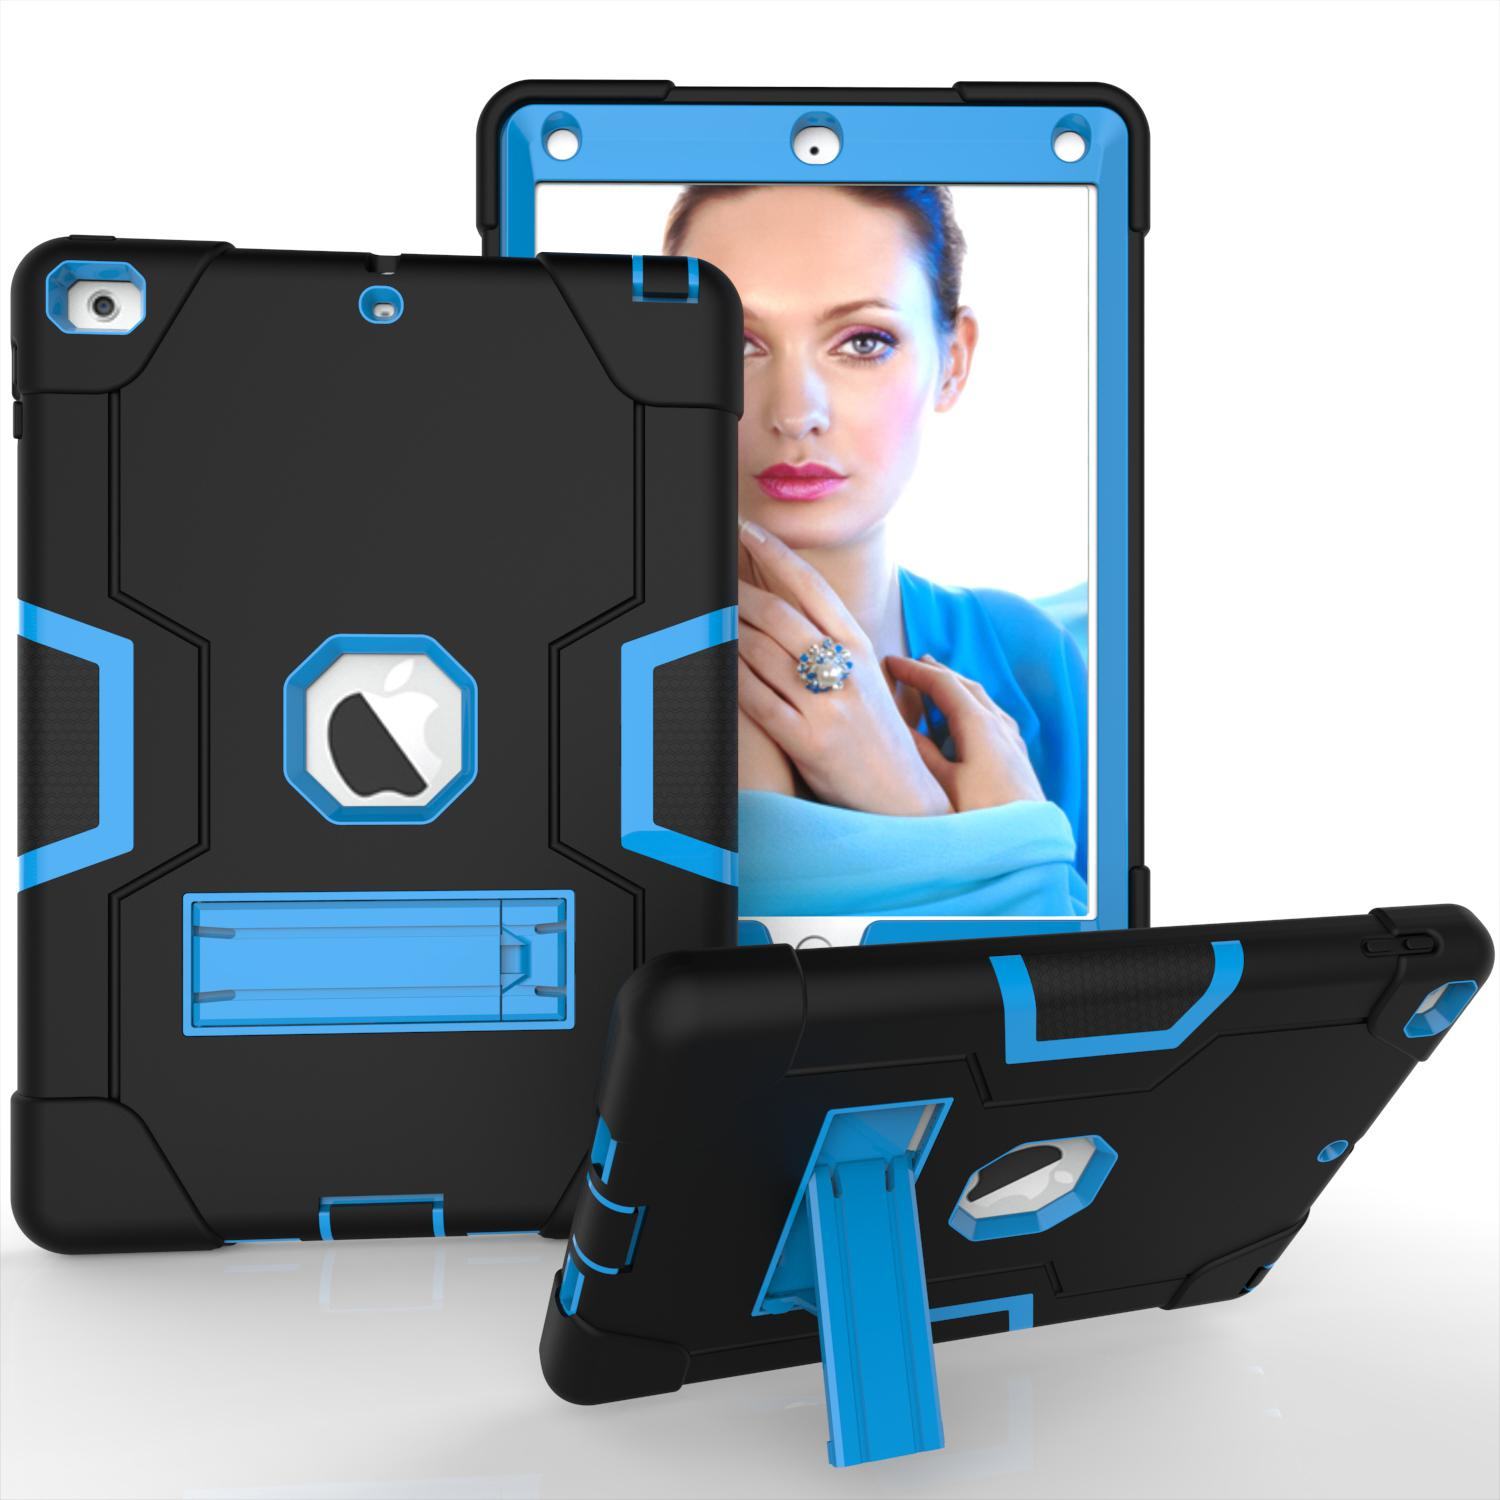 3 in 1 Silicon PC Full Body Case Shockproof Hybrid Robot Heavy Duty Kids Safe Rugged Cover Kickstand For Apple iPad Mini 2 5 Pro Air 4 Air4 10.9 11 2021 7 8 10.2 10.5 9.7